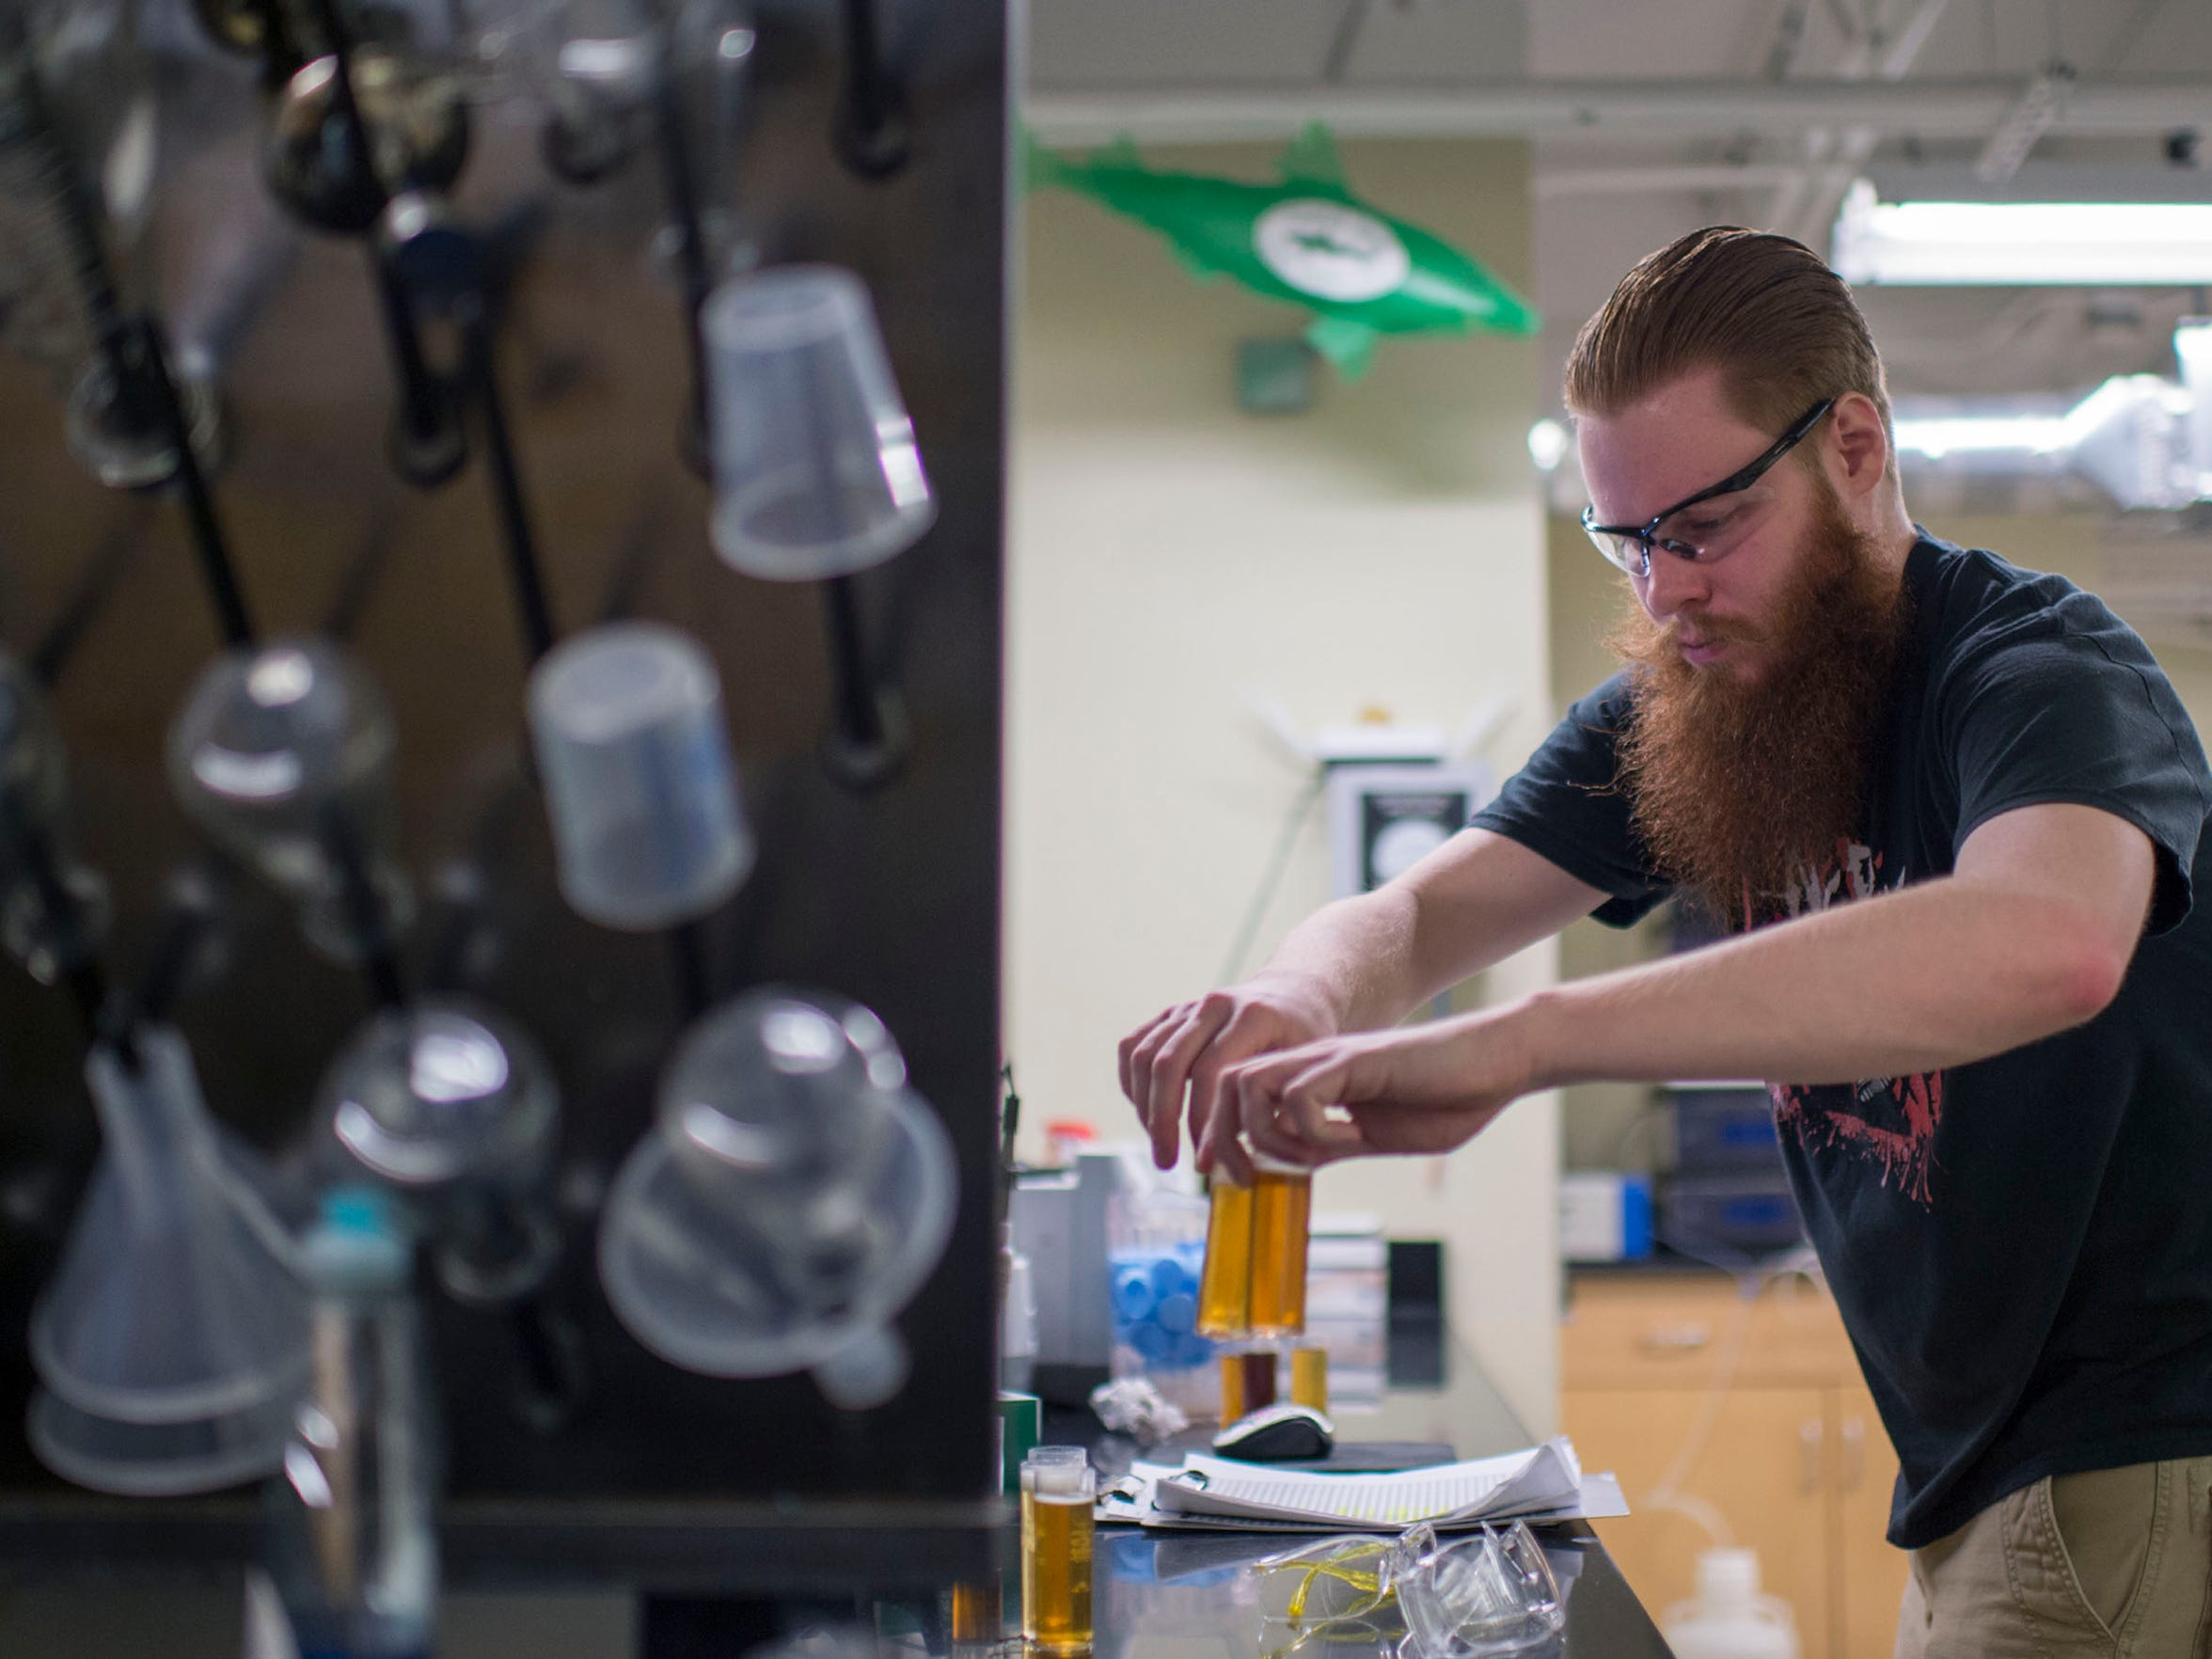 Process chemist Sean Miller checks the gravity of alcohol in the brewery's lab Wednesday, Feb. 11 at Dogfish Head in Milton.